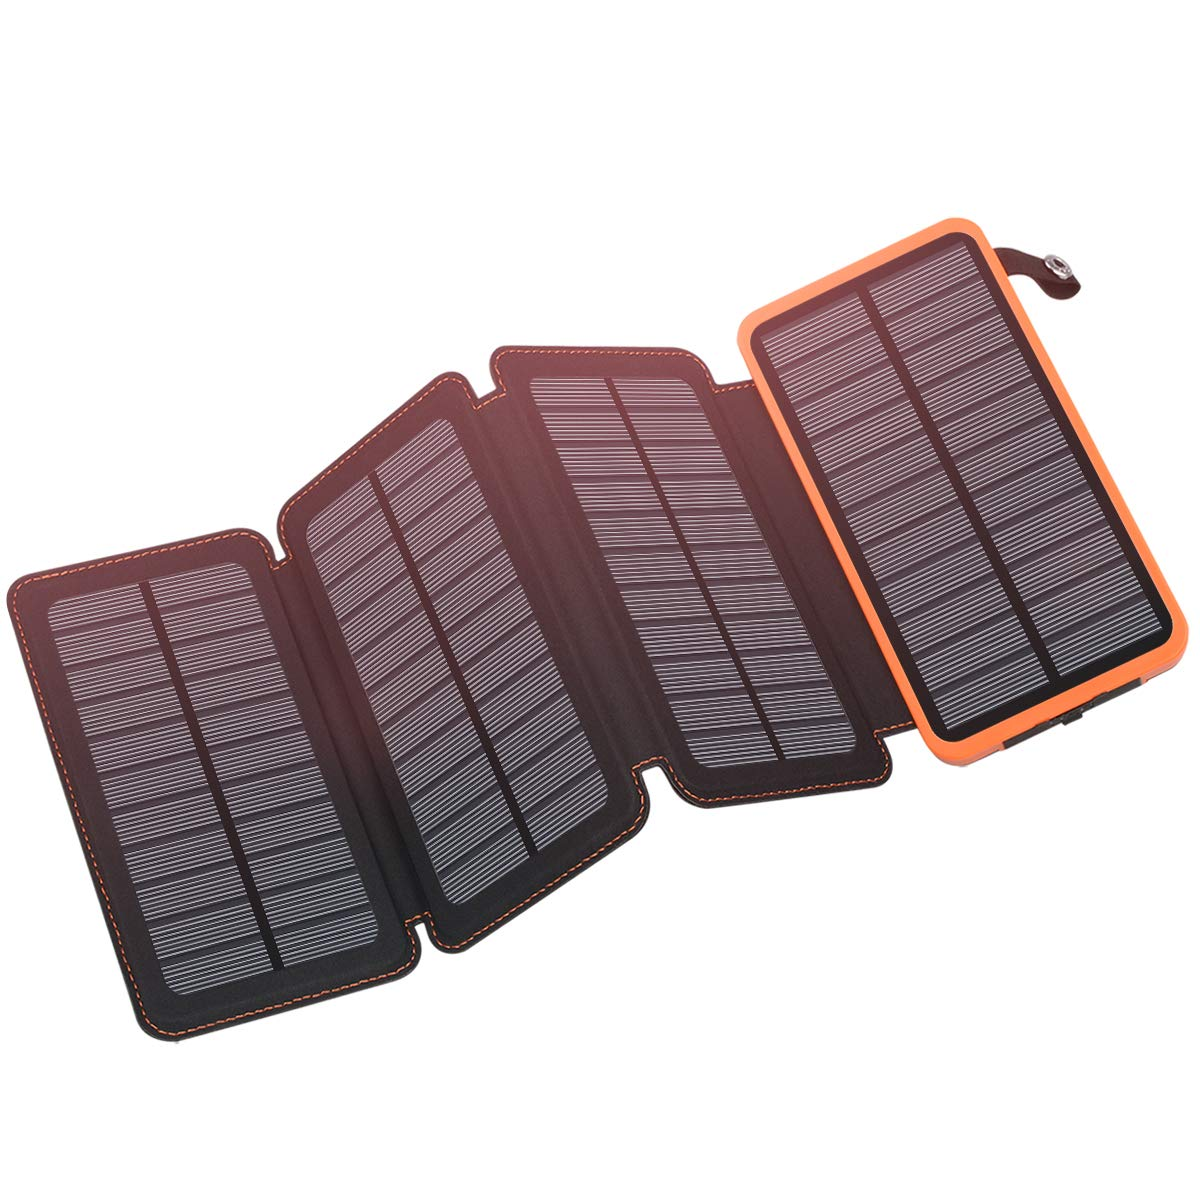 Solar Charger 25000mAh, FEELLE Solar Power Bank with 4 Solar Panels Outdoor Waterproof Solar Phone Chargers with Dual 2.1A USB Ports for Smart Phone, Tablets, Camera, ect. by Feelle